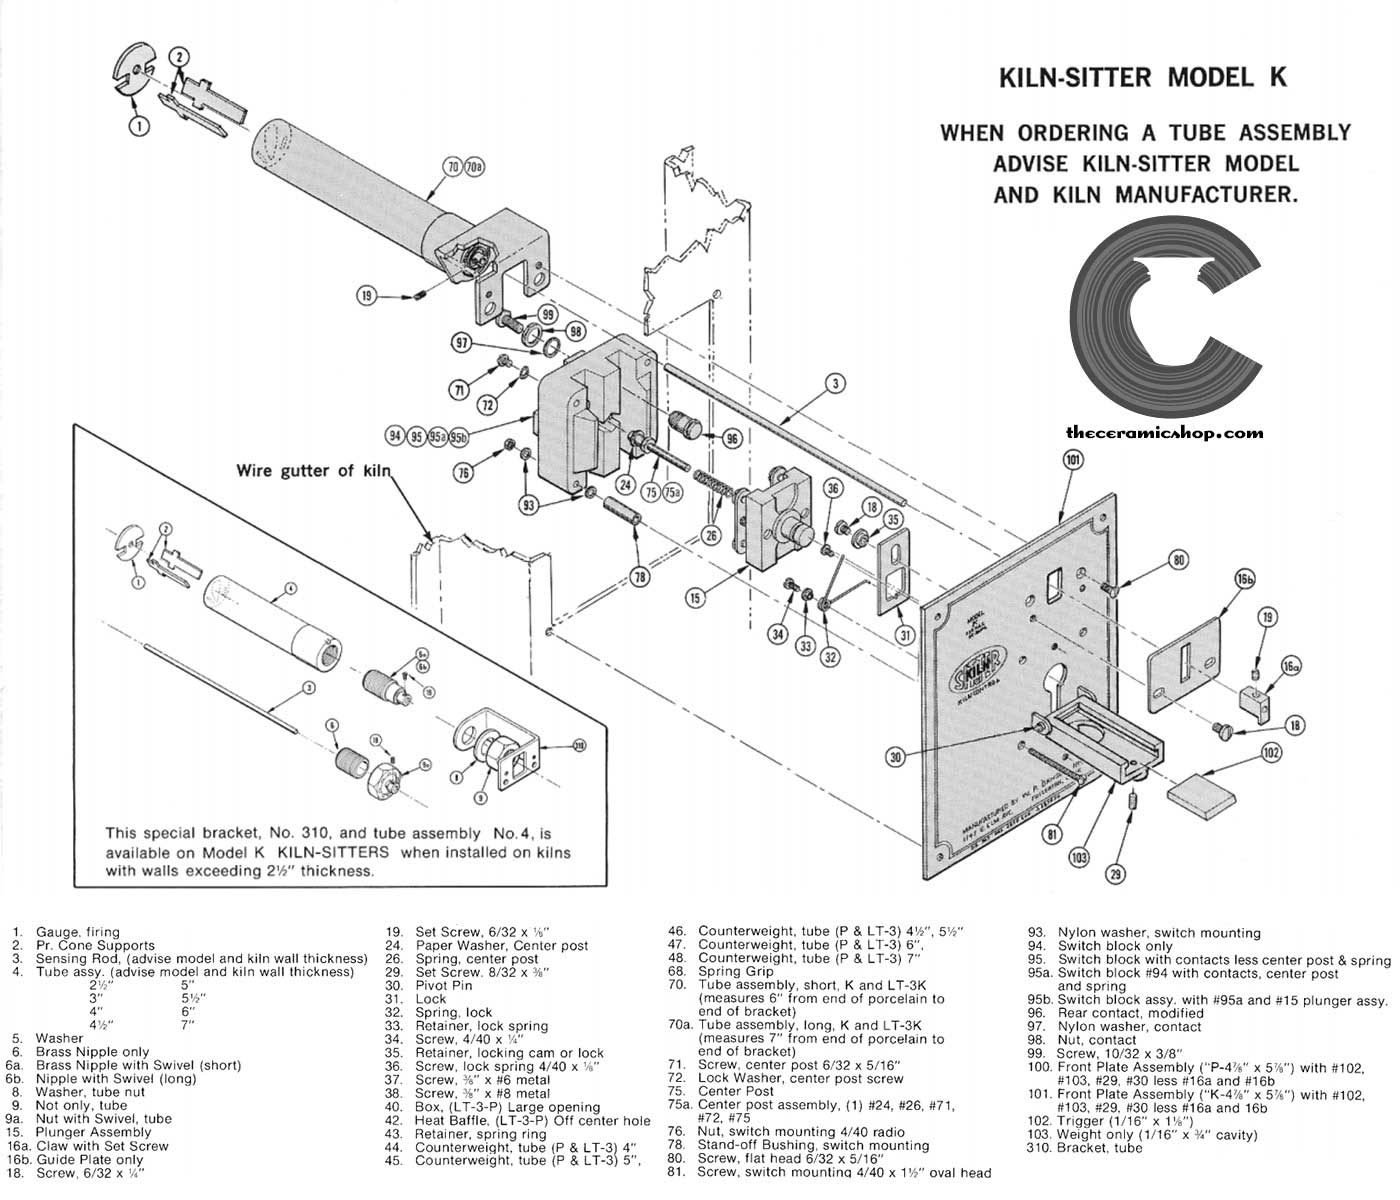 Kiln Sitter Parts The Ceramic Shop Brent Mason Wiring Diagram Part Replacement List